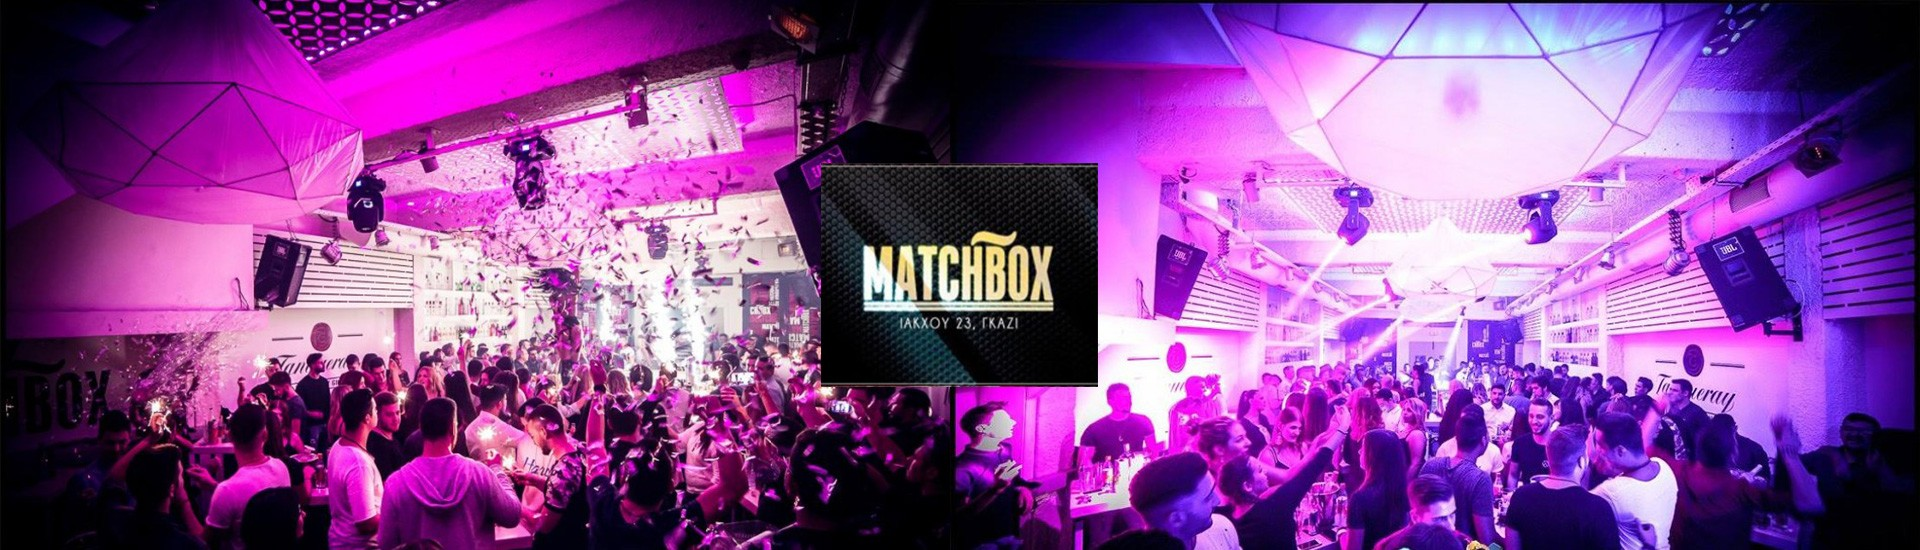 Matchbox Club Γκάζι